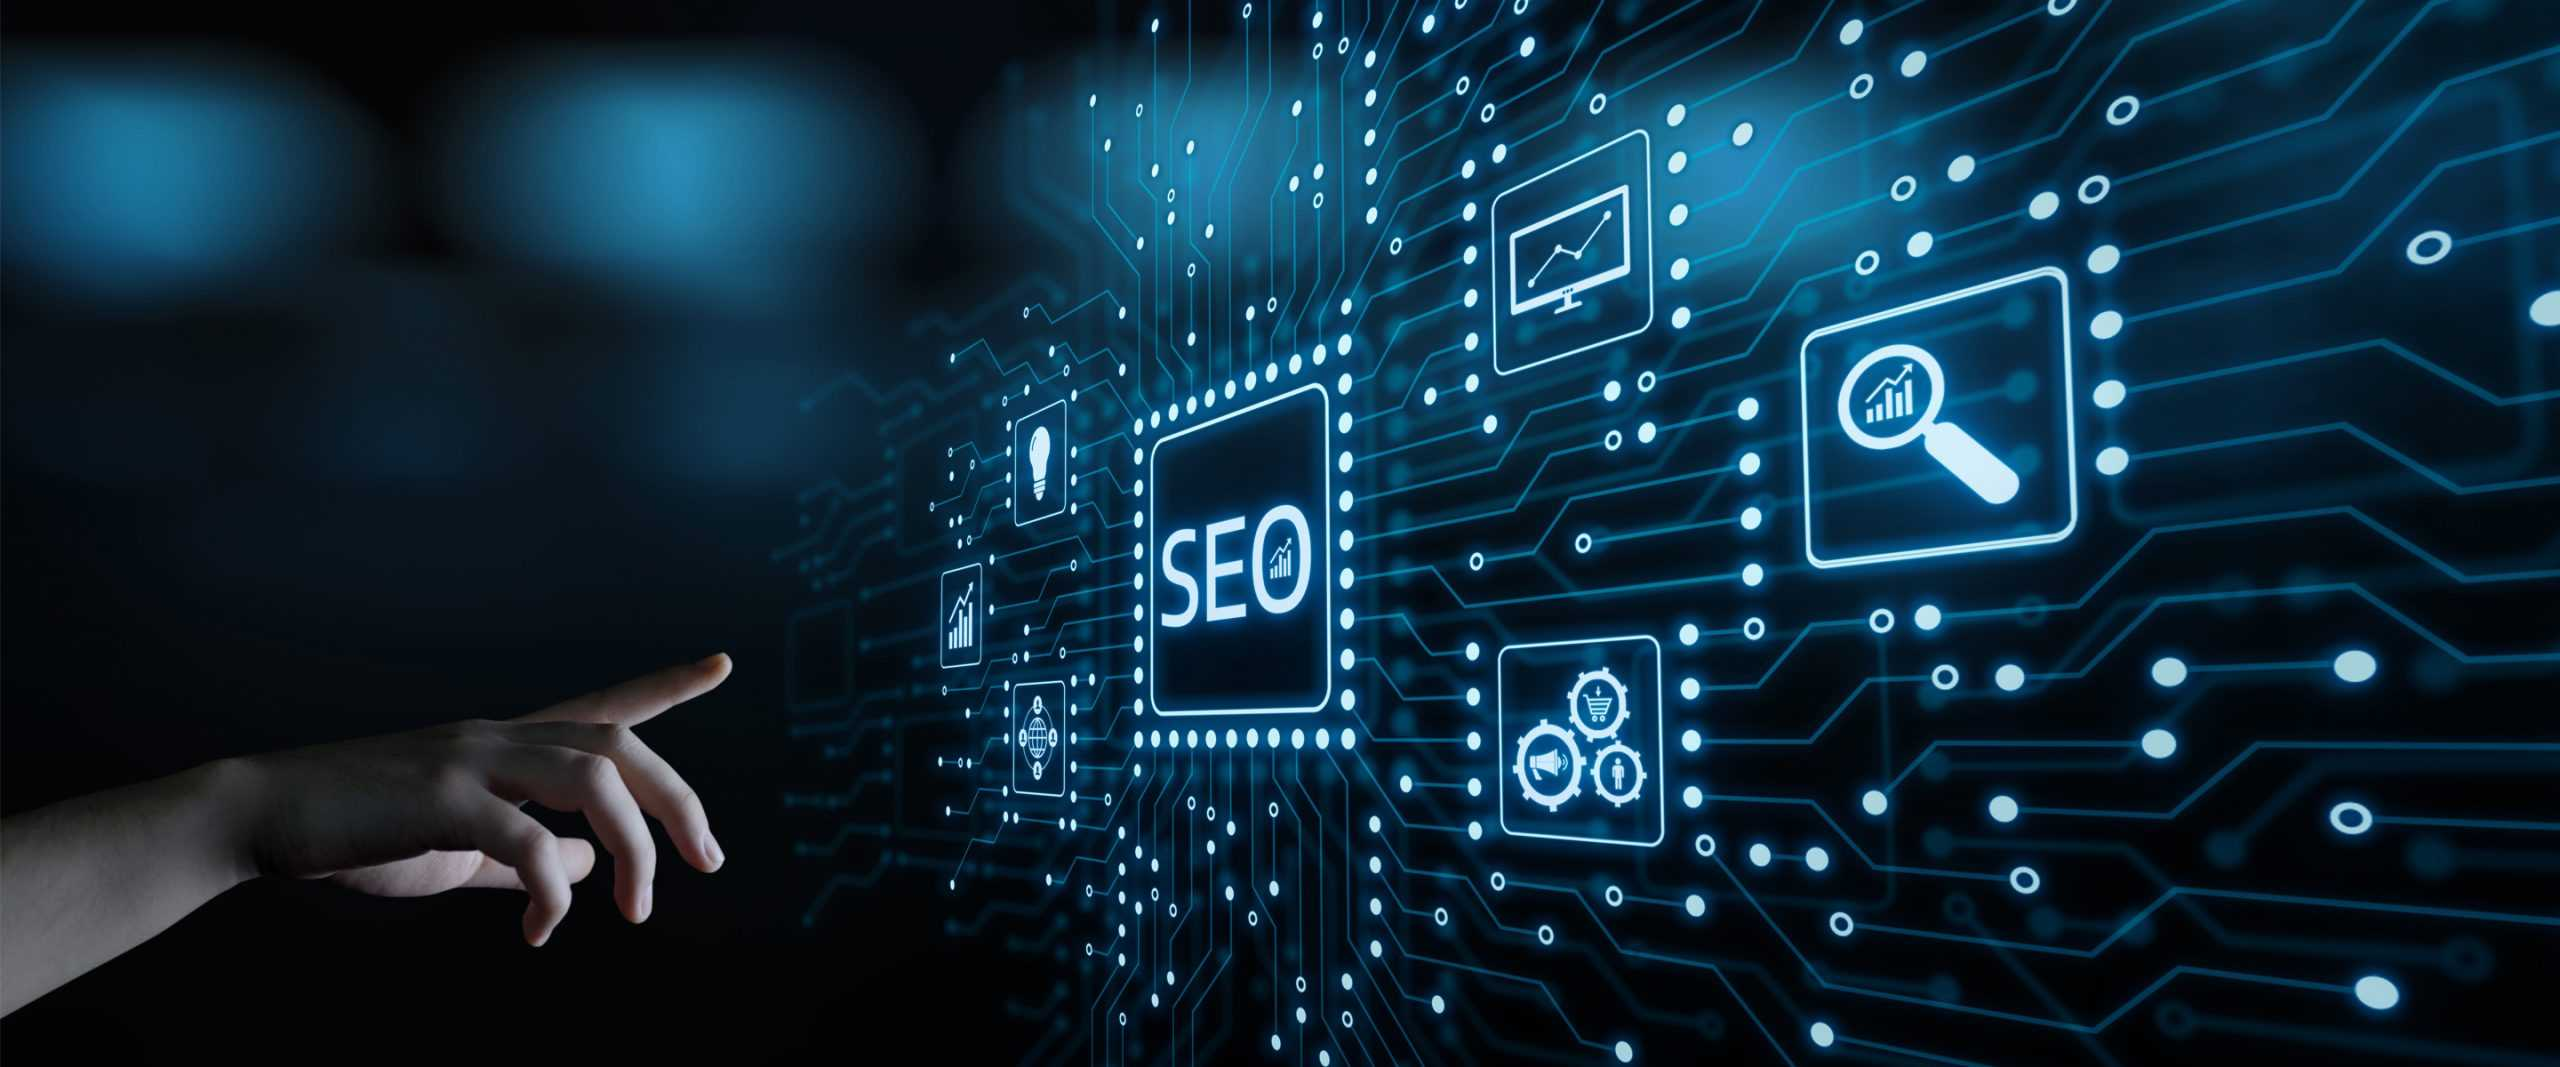 Marketers say it's crucial to invest in SEO now more than ever.